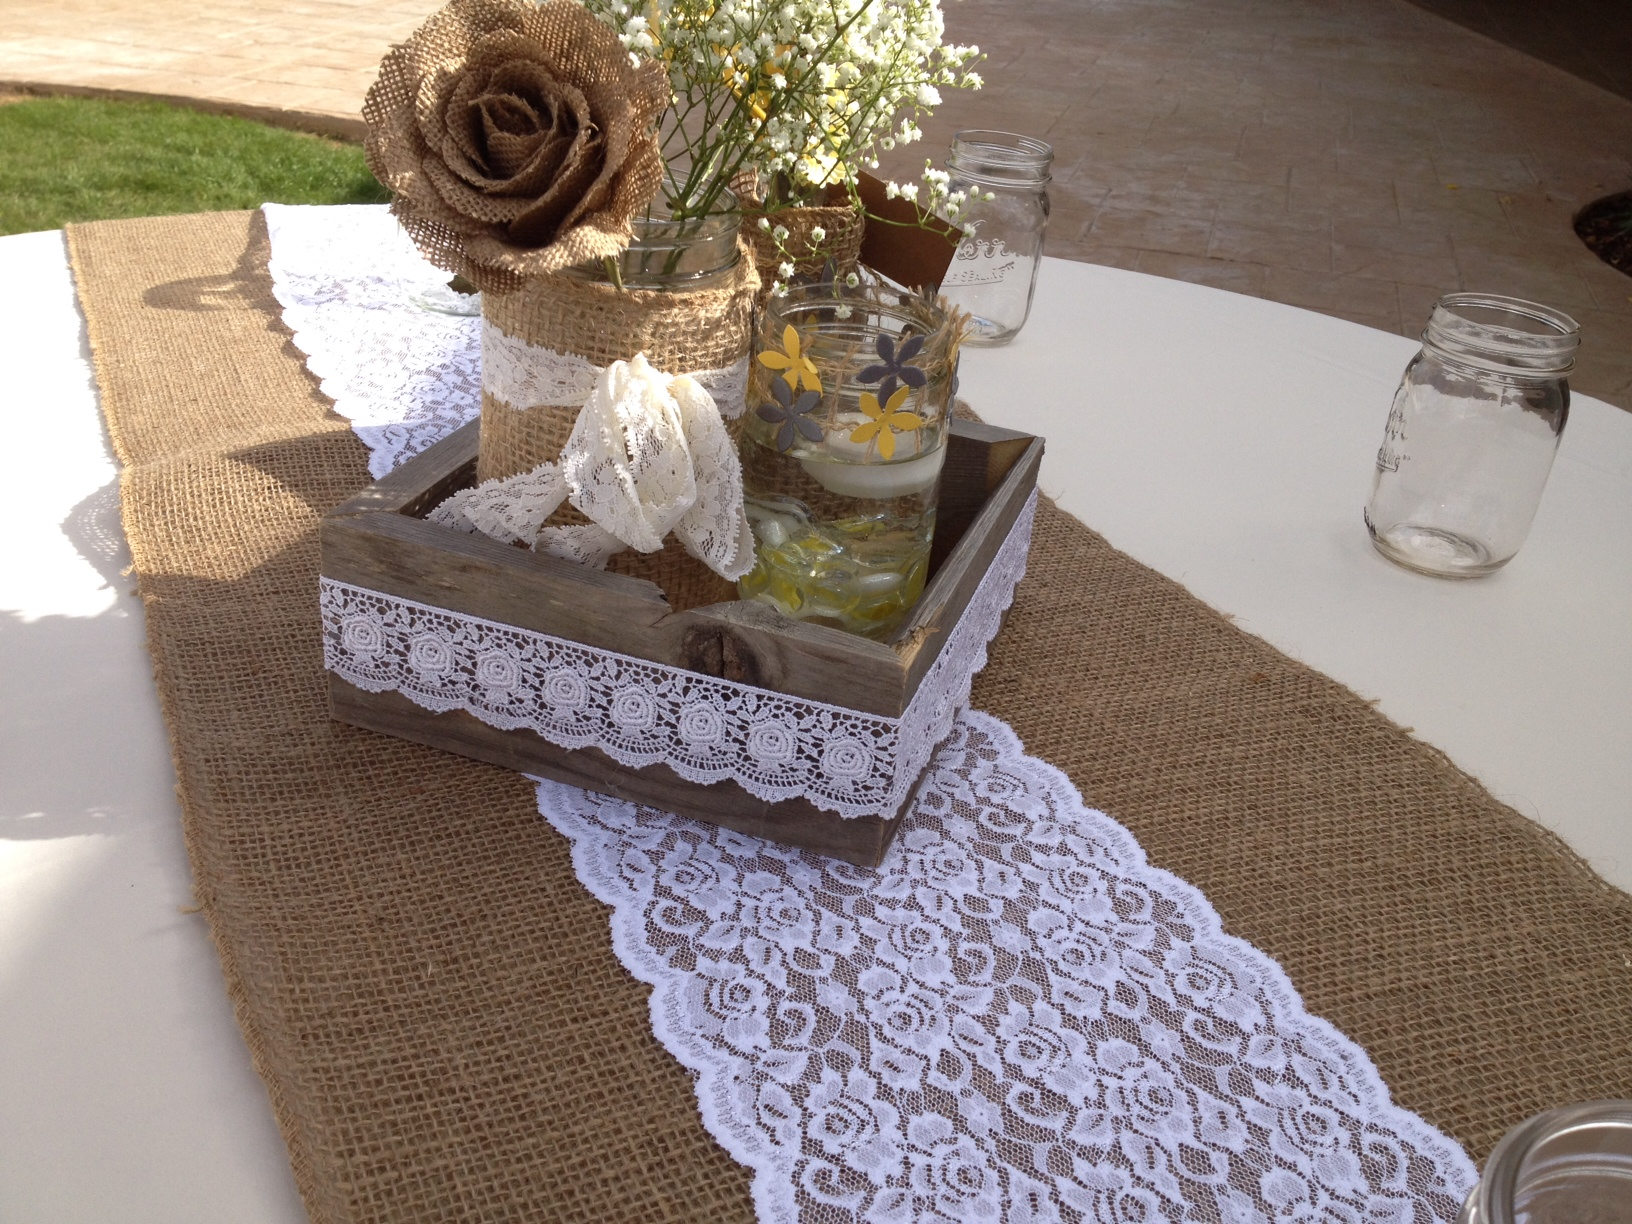 Lace Table Runners Wholesale | Lace Table Runners | Burlap Table Runners with Lace